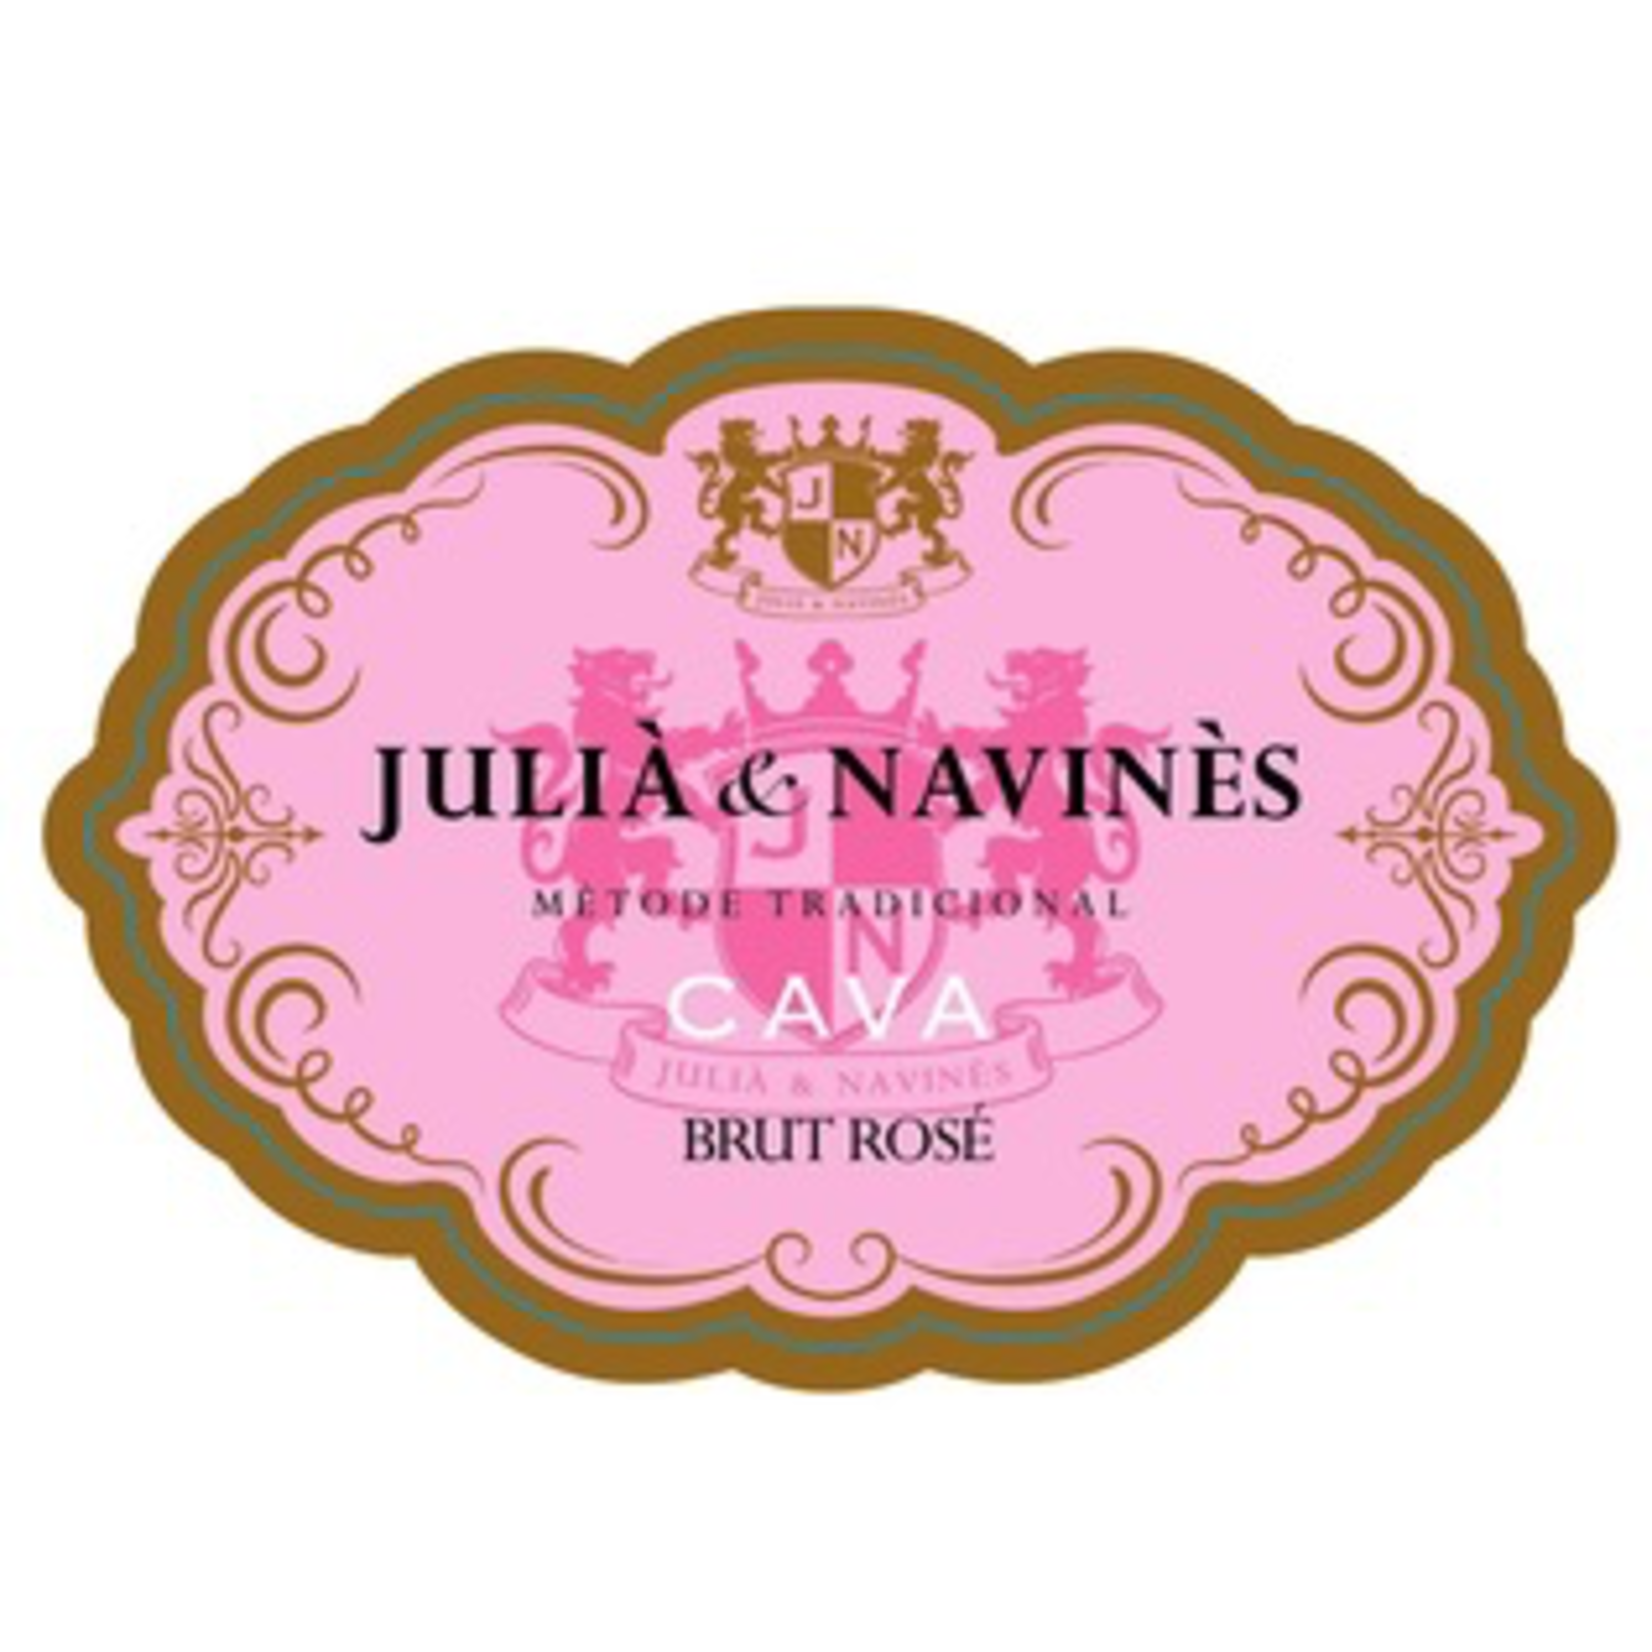 Julia & Navines Cava Brut Rose Methode Traditionnelle